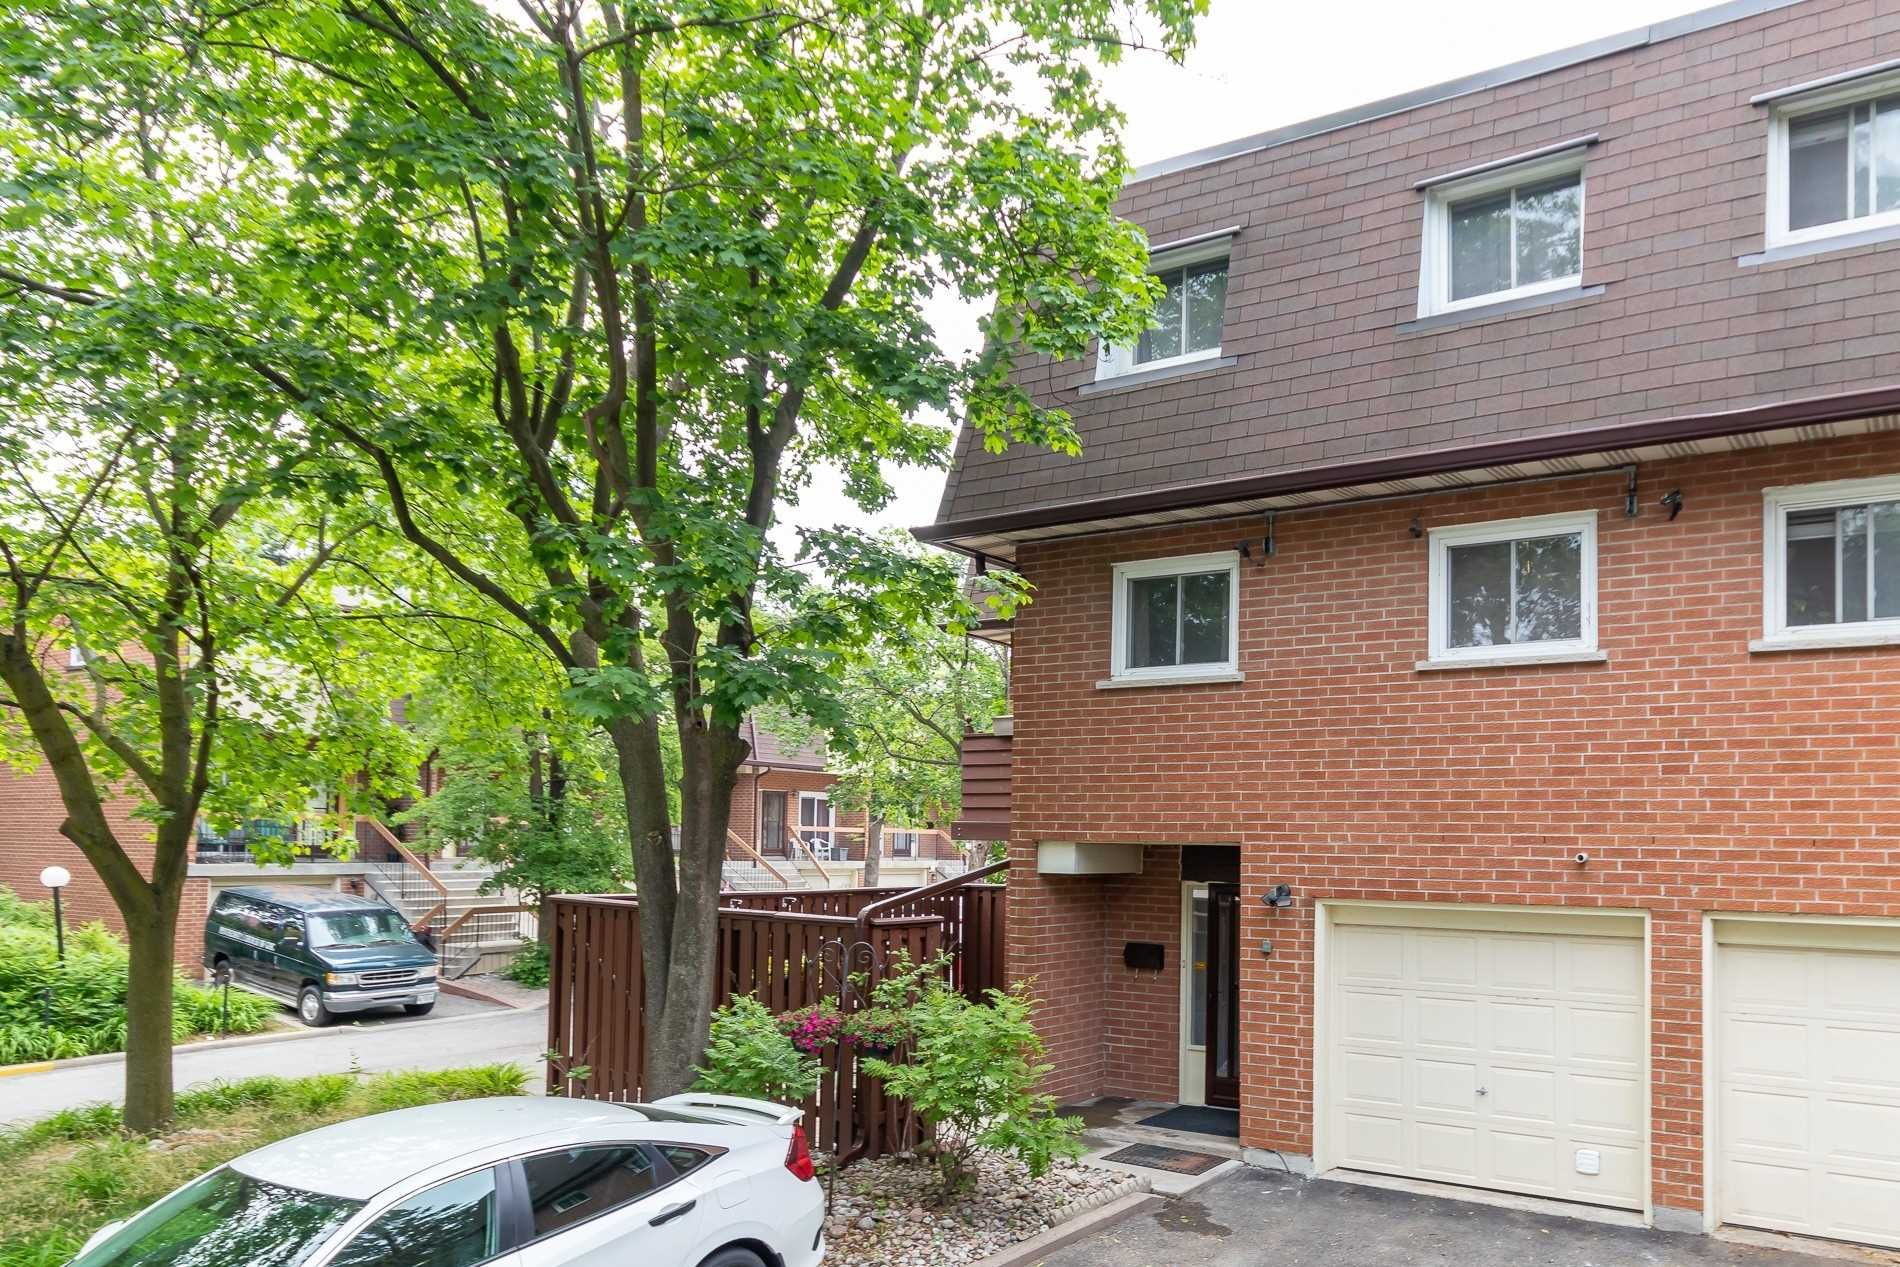 152 Homestead Rd, unit 16 for sale in Toronto - image #1